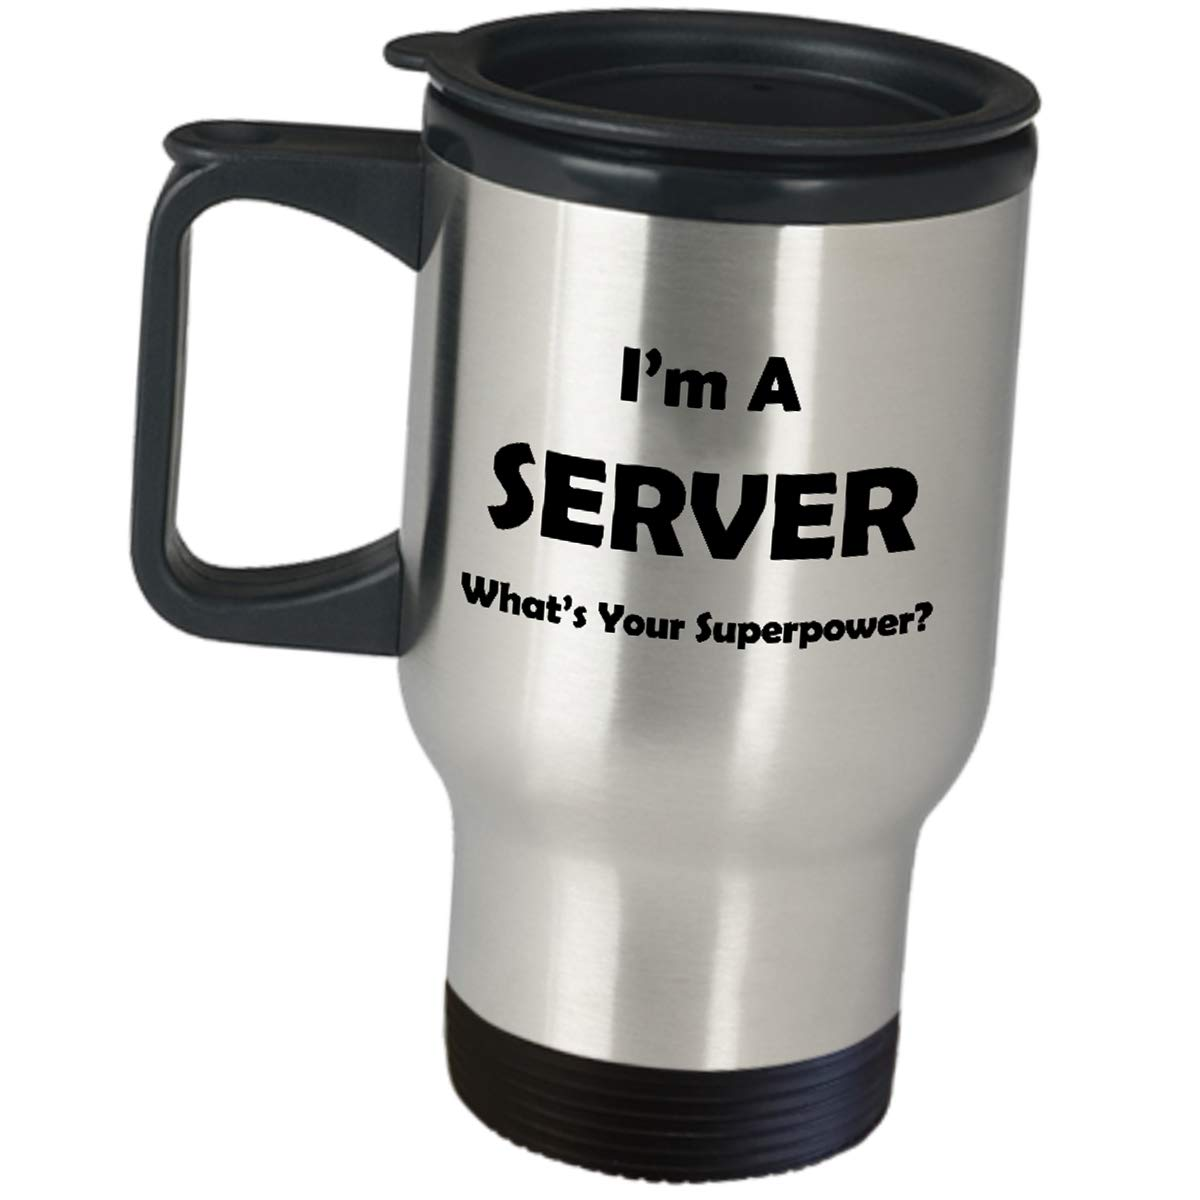 Server Waitress Waiter Gift - Whats Your Superpower - Stainless Steel Travel Mug Insulated Coffee Tumble Job Pride Gifts Restaurant Food Order Taker Appreciation Funny Cute Gag For Men Women